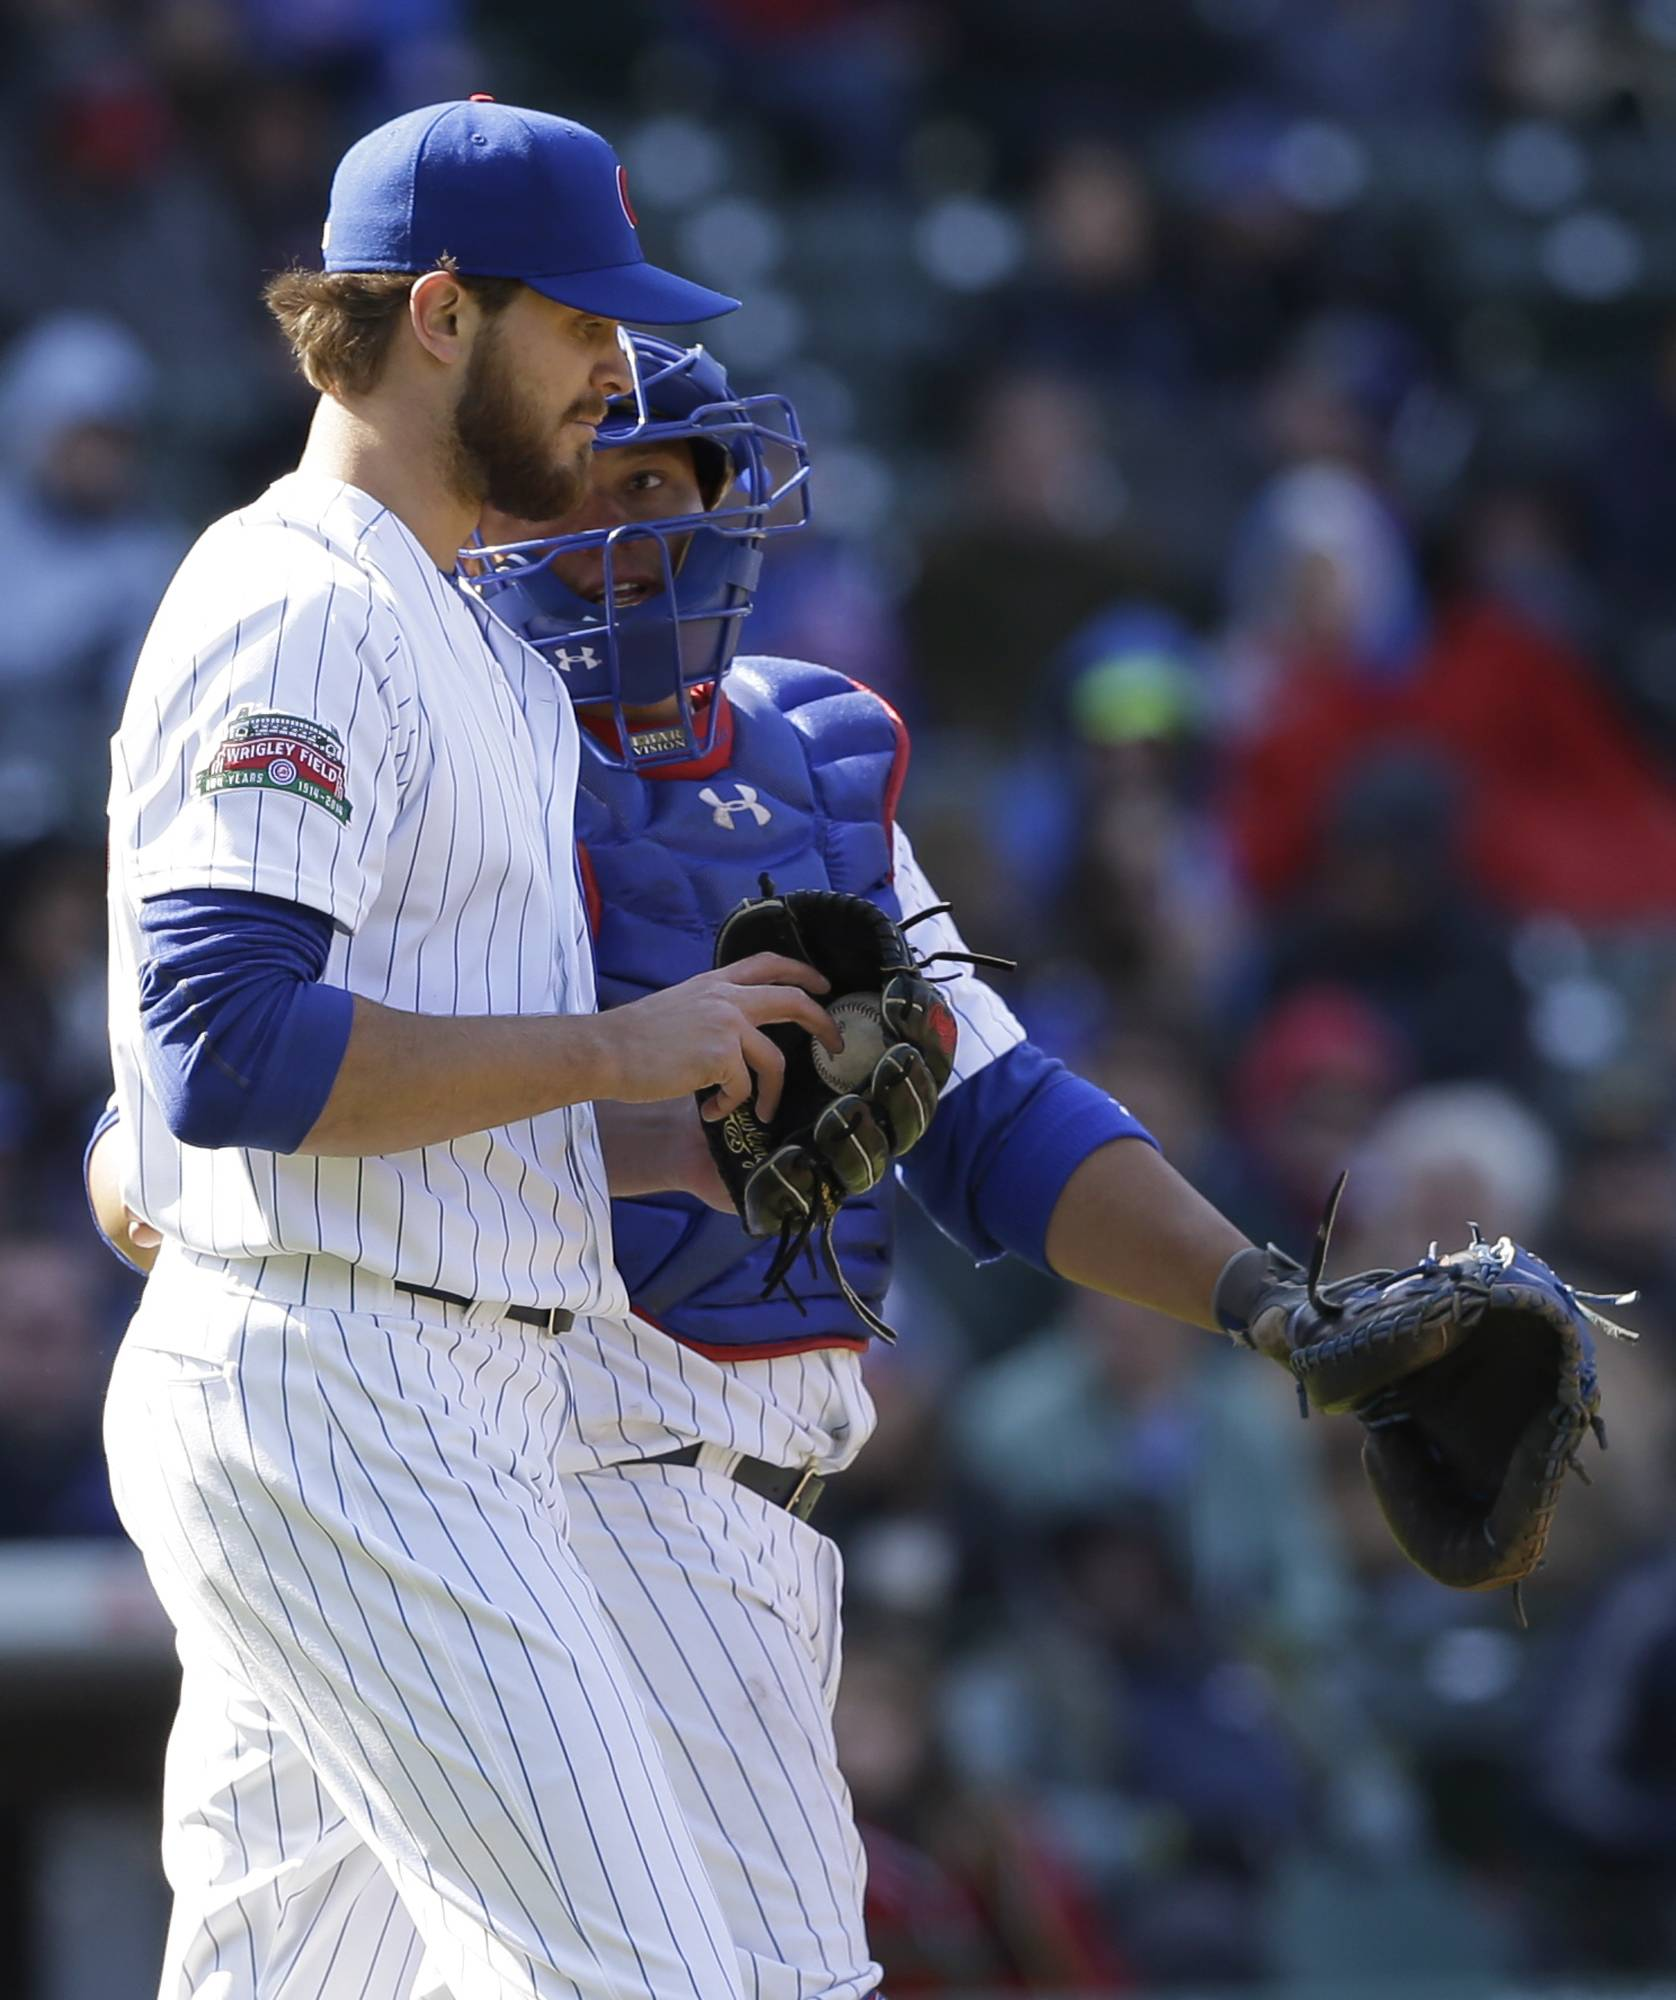 'Reverse-split' relievers intrigue Cubs' Maddon